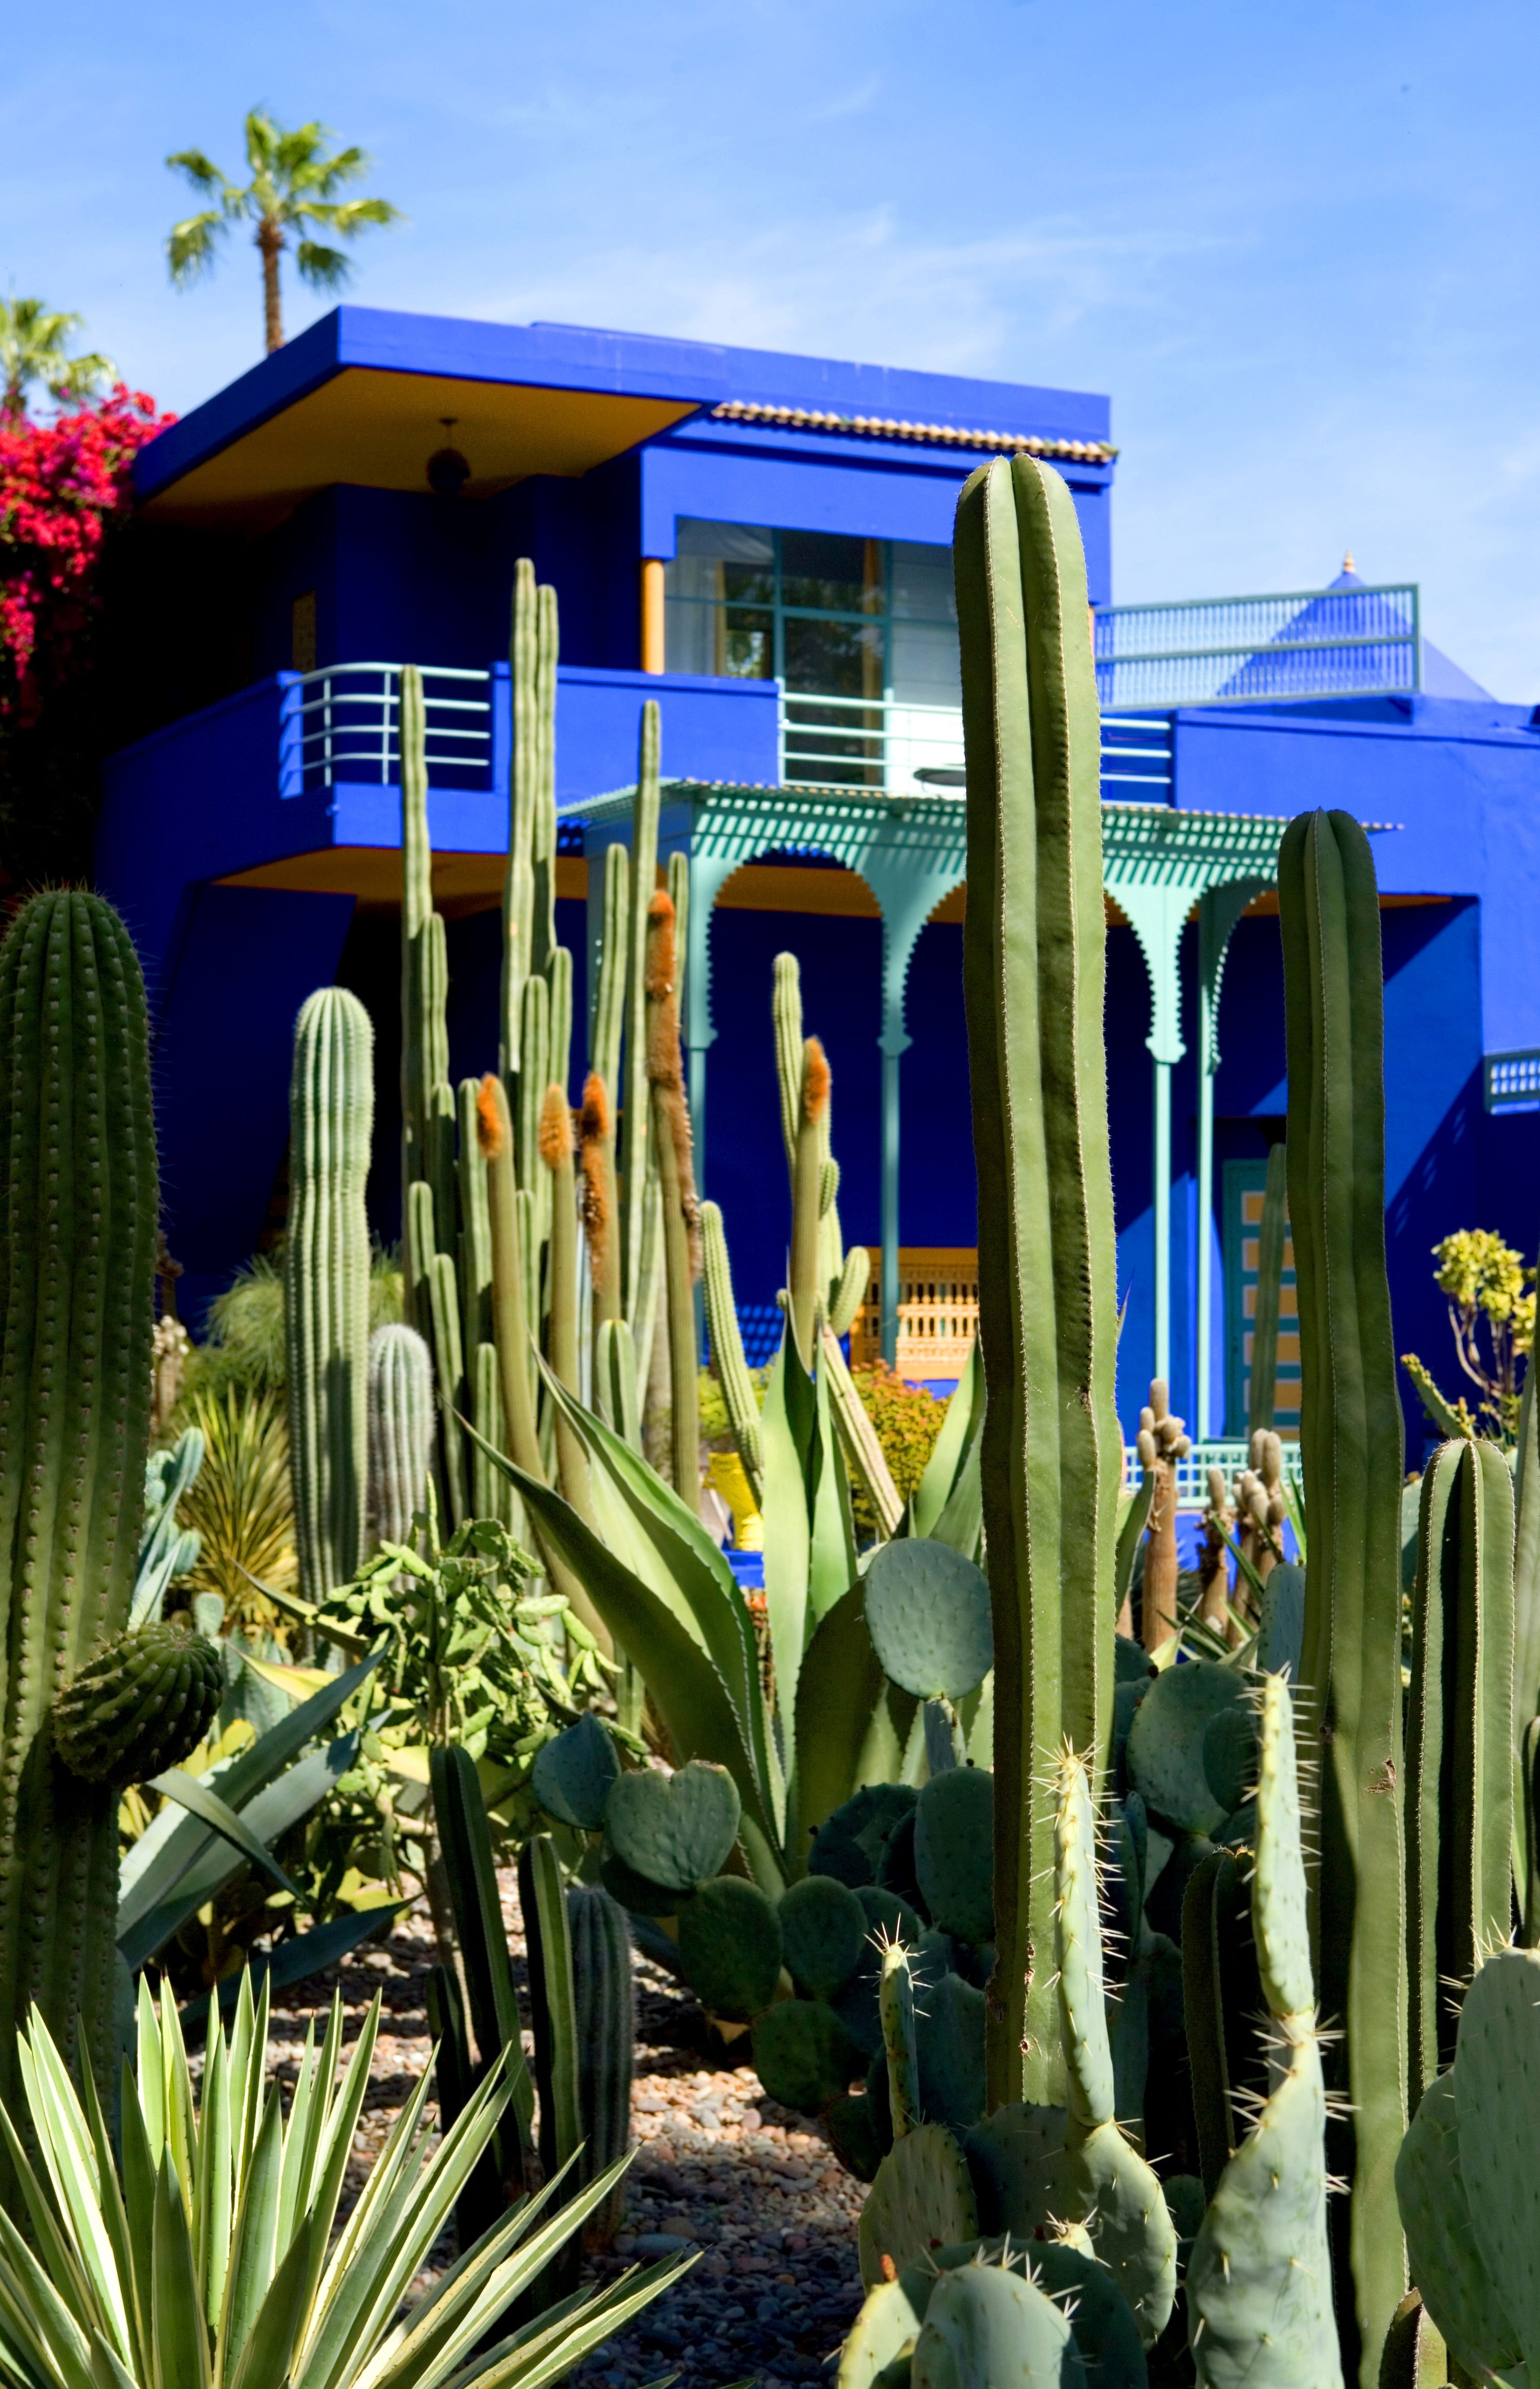 La villa Majorelle du couturier Yves Saint Laurent à Marrakech | Photo : Getty Images